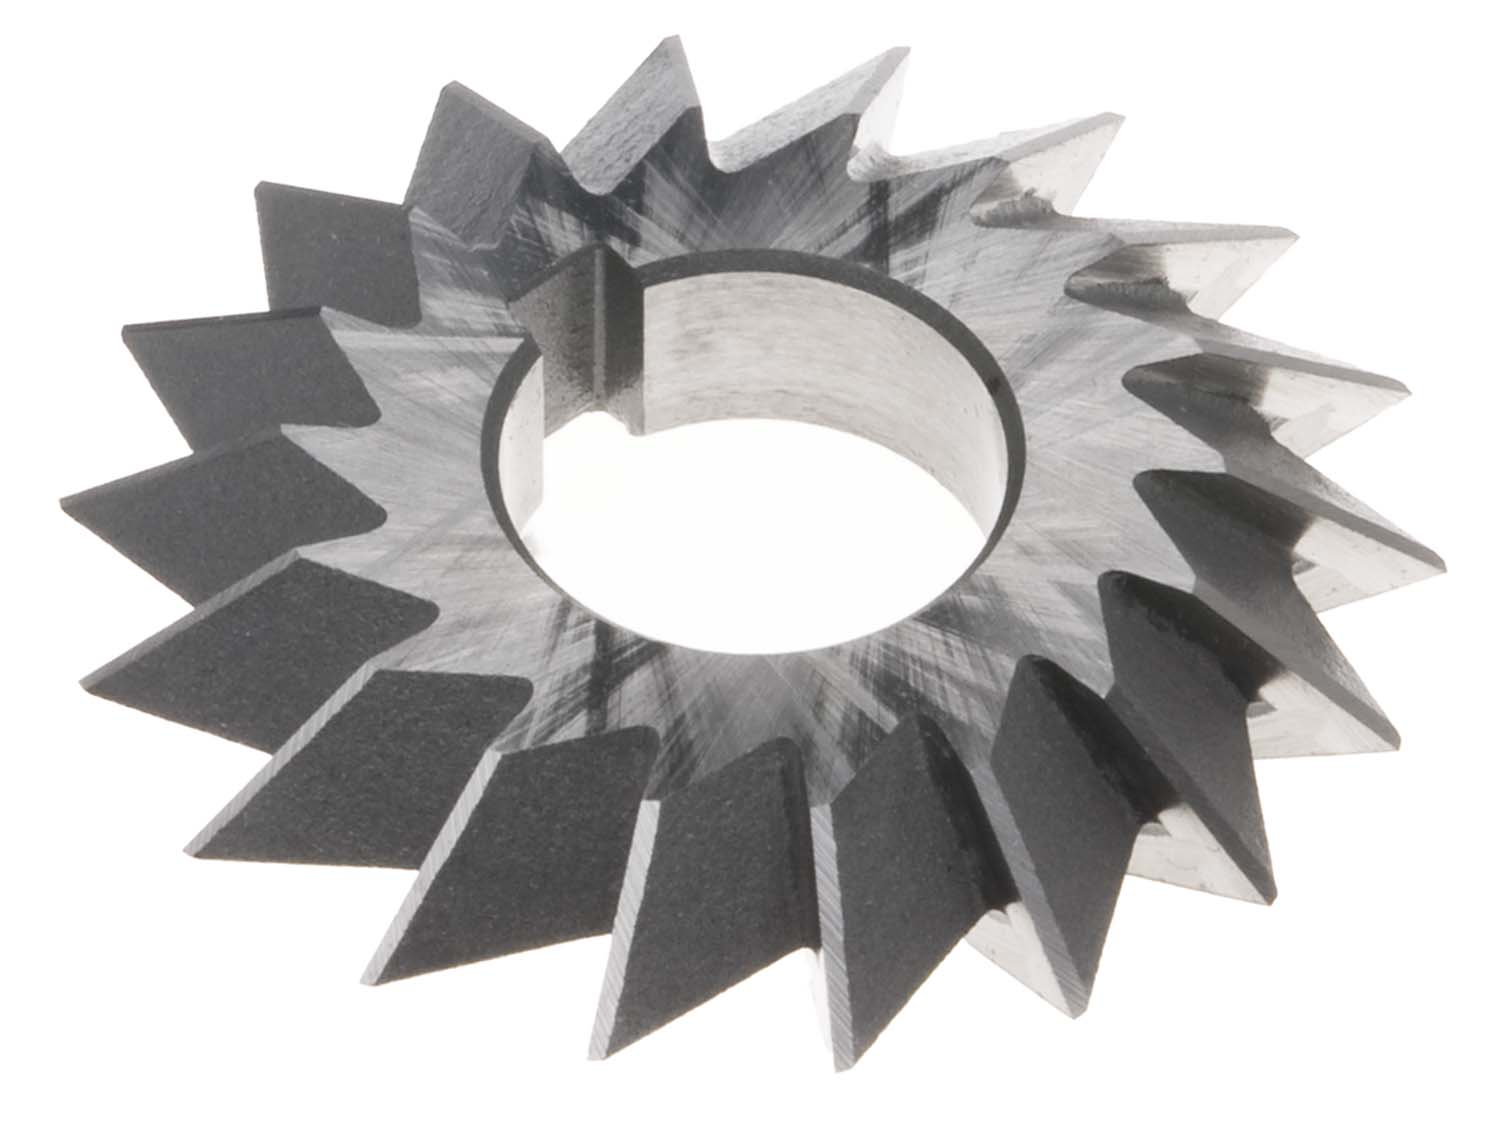 "4 X 1 X 1-1/4"" 60 Degree Double Angle Cutter, High Speed Steel"